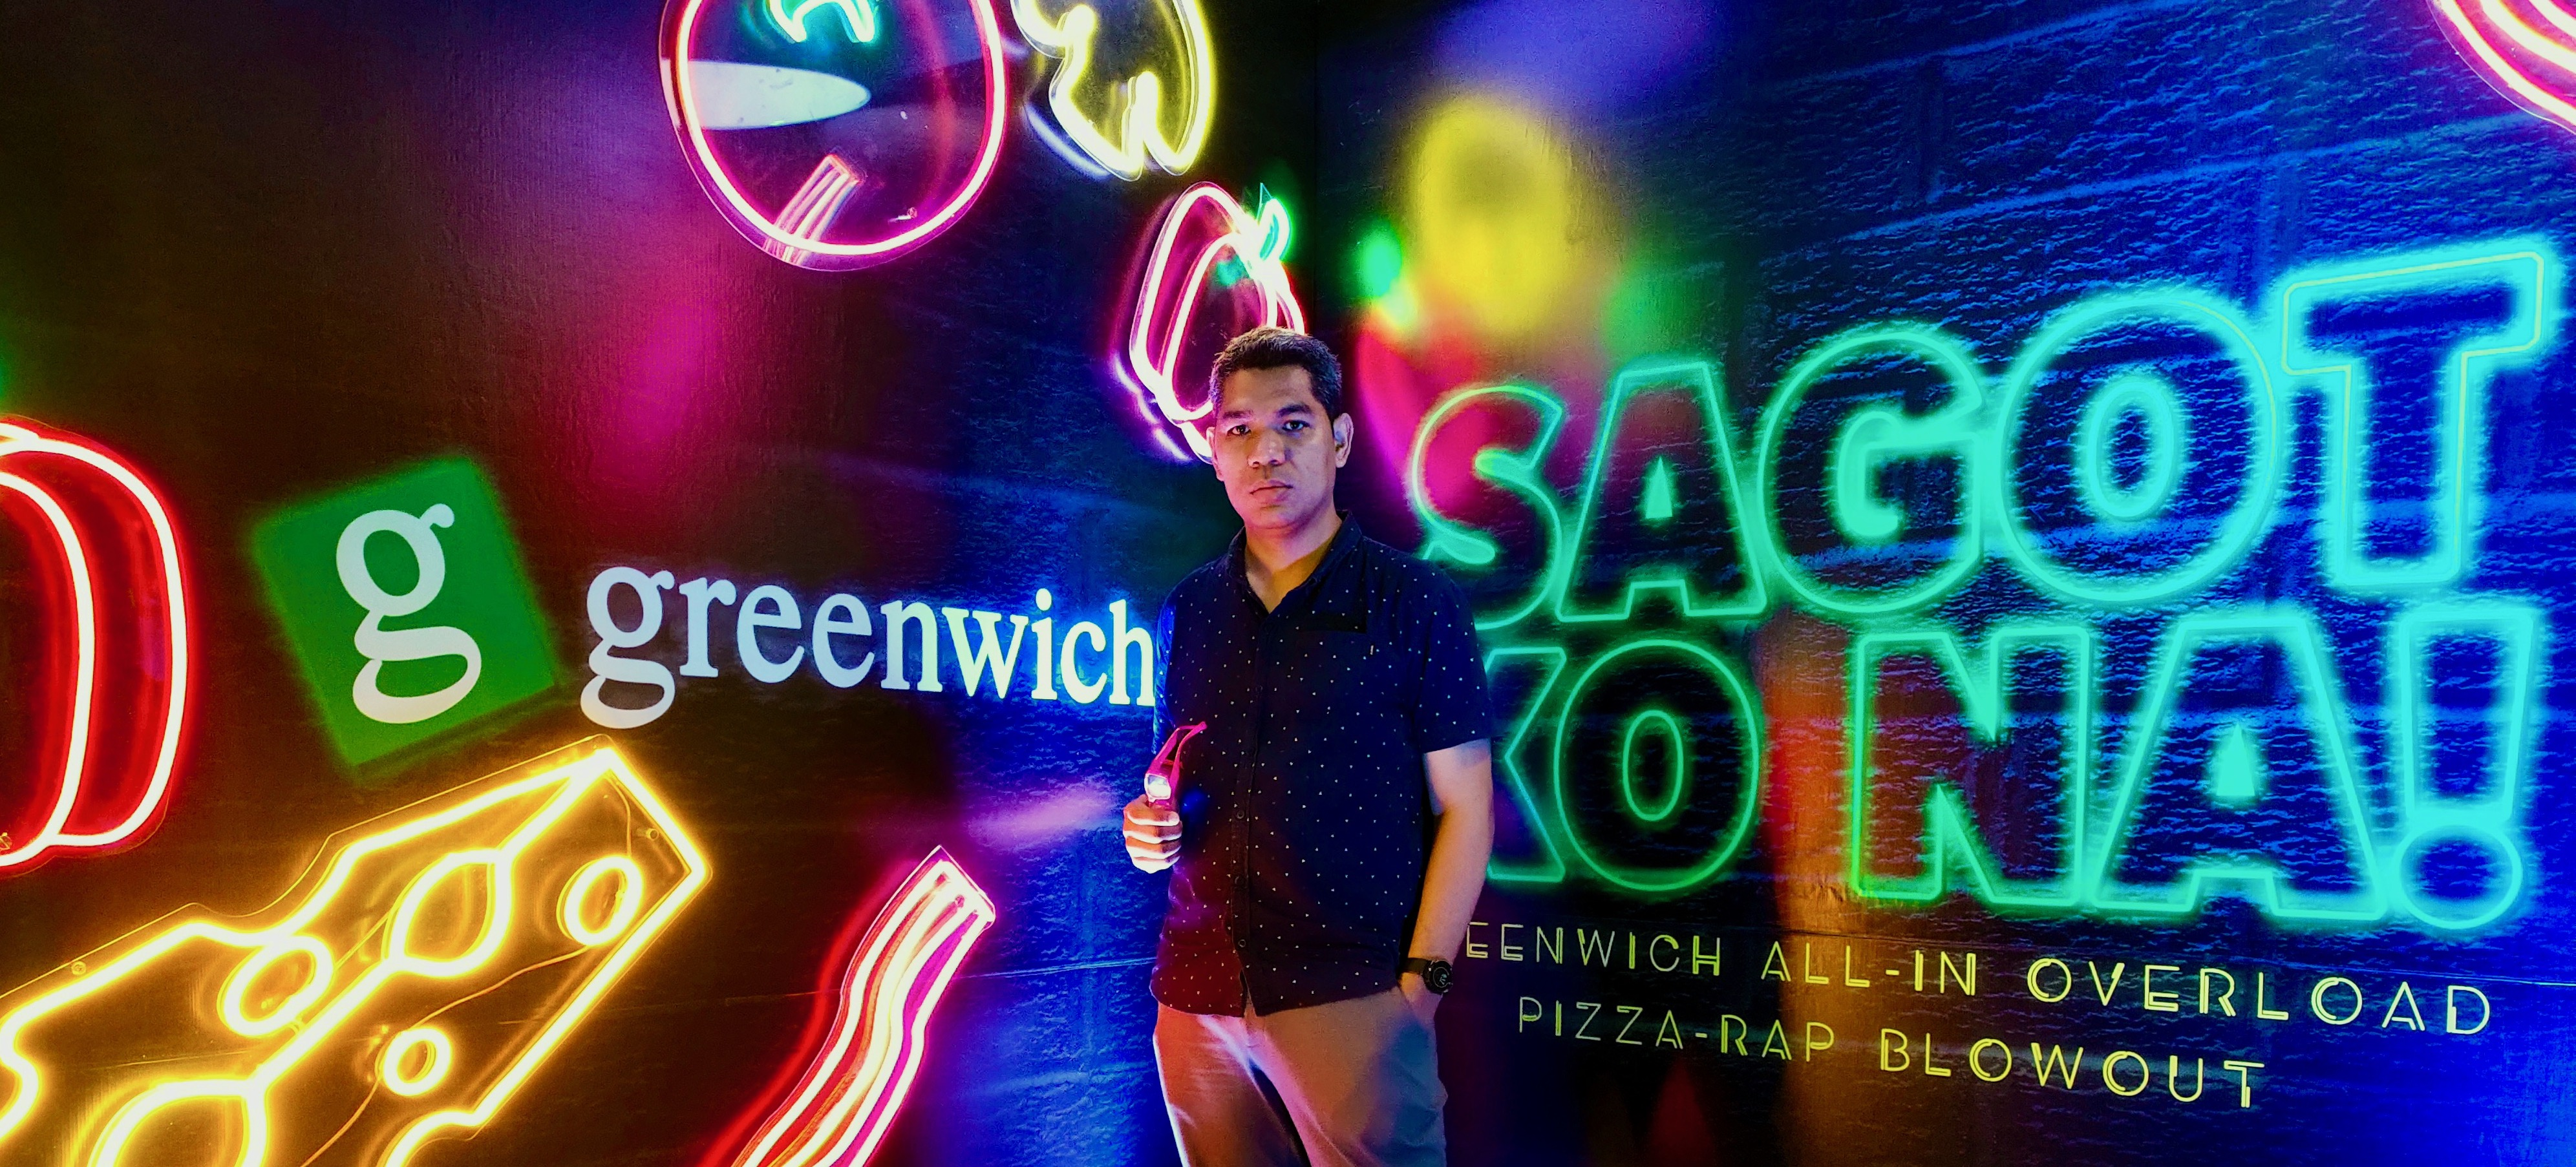 Pizza-Rap Barkada Blowout with #GreenwichSagotKoNa